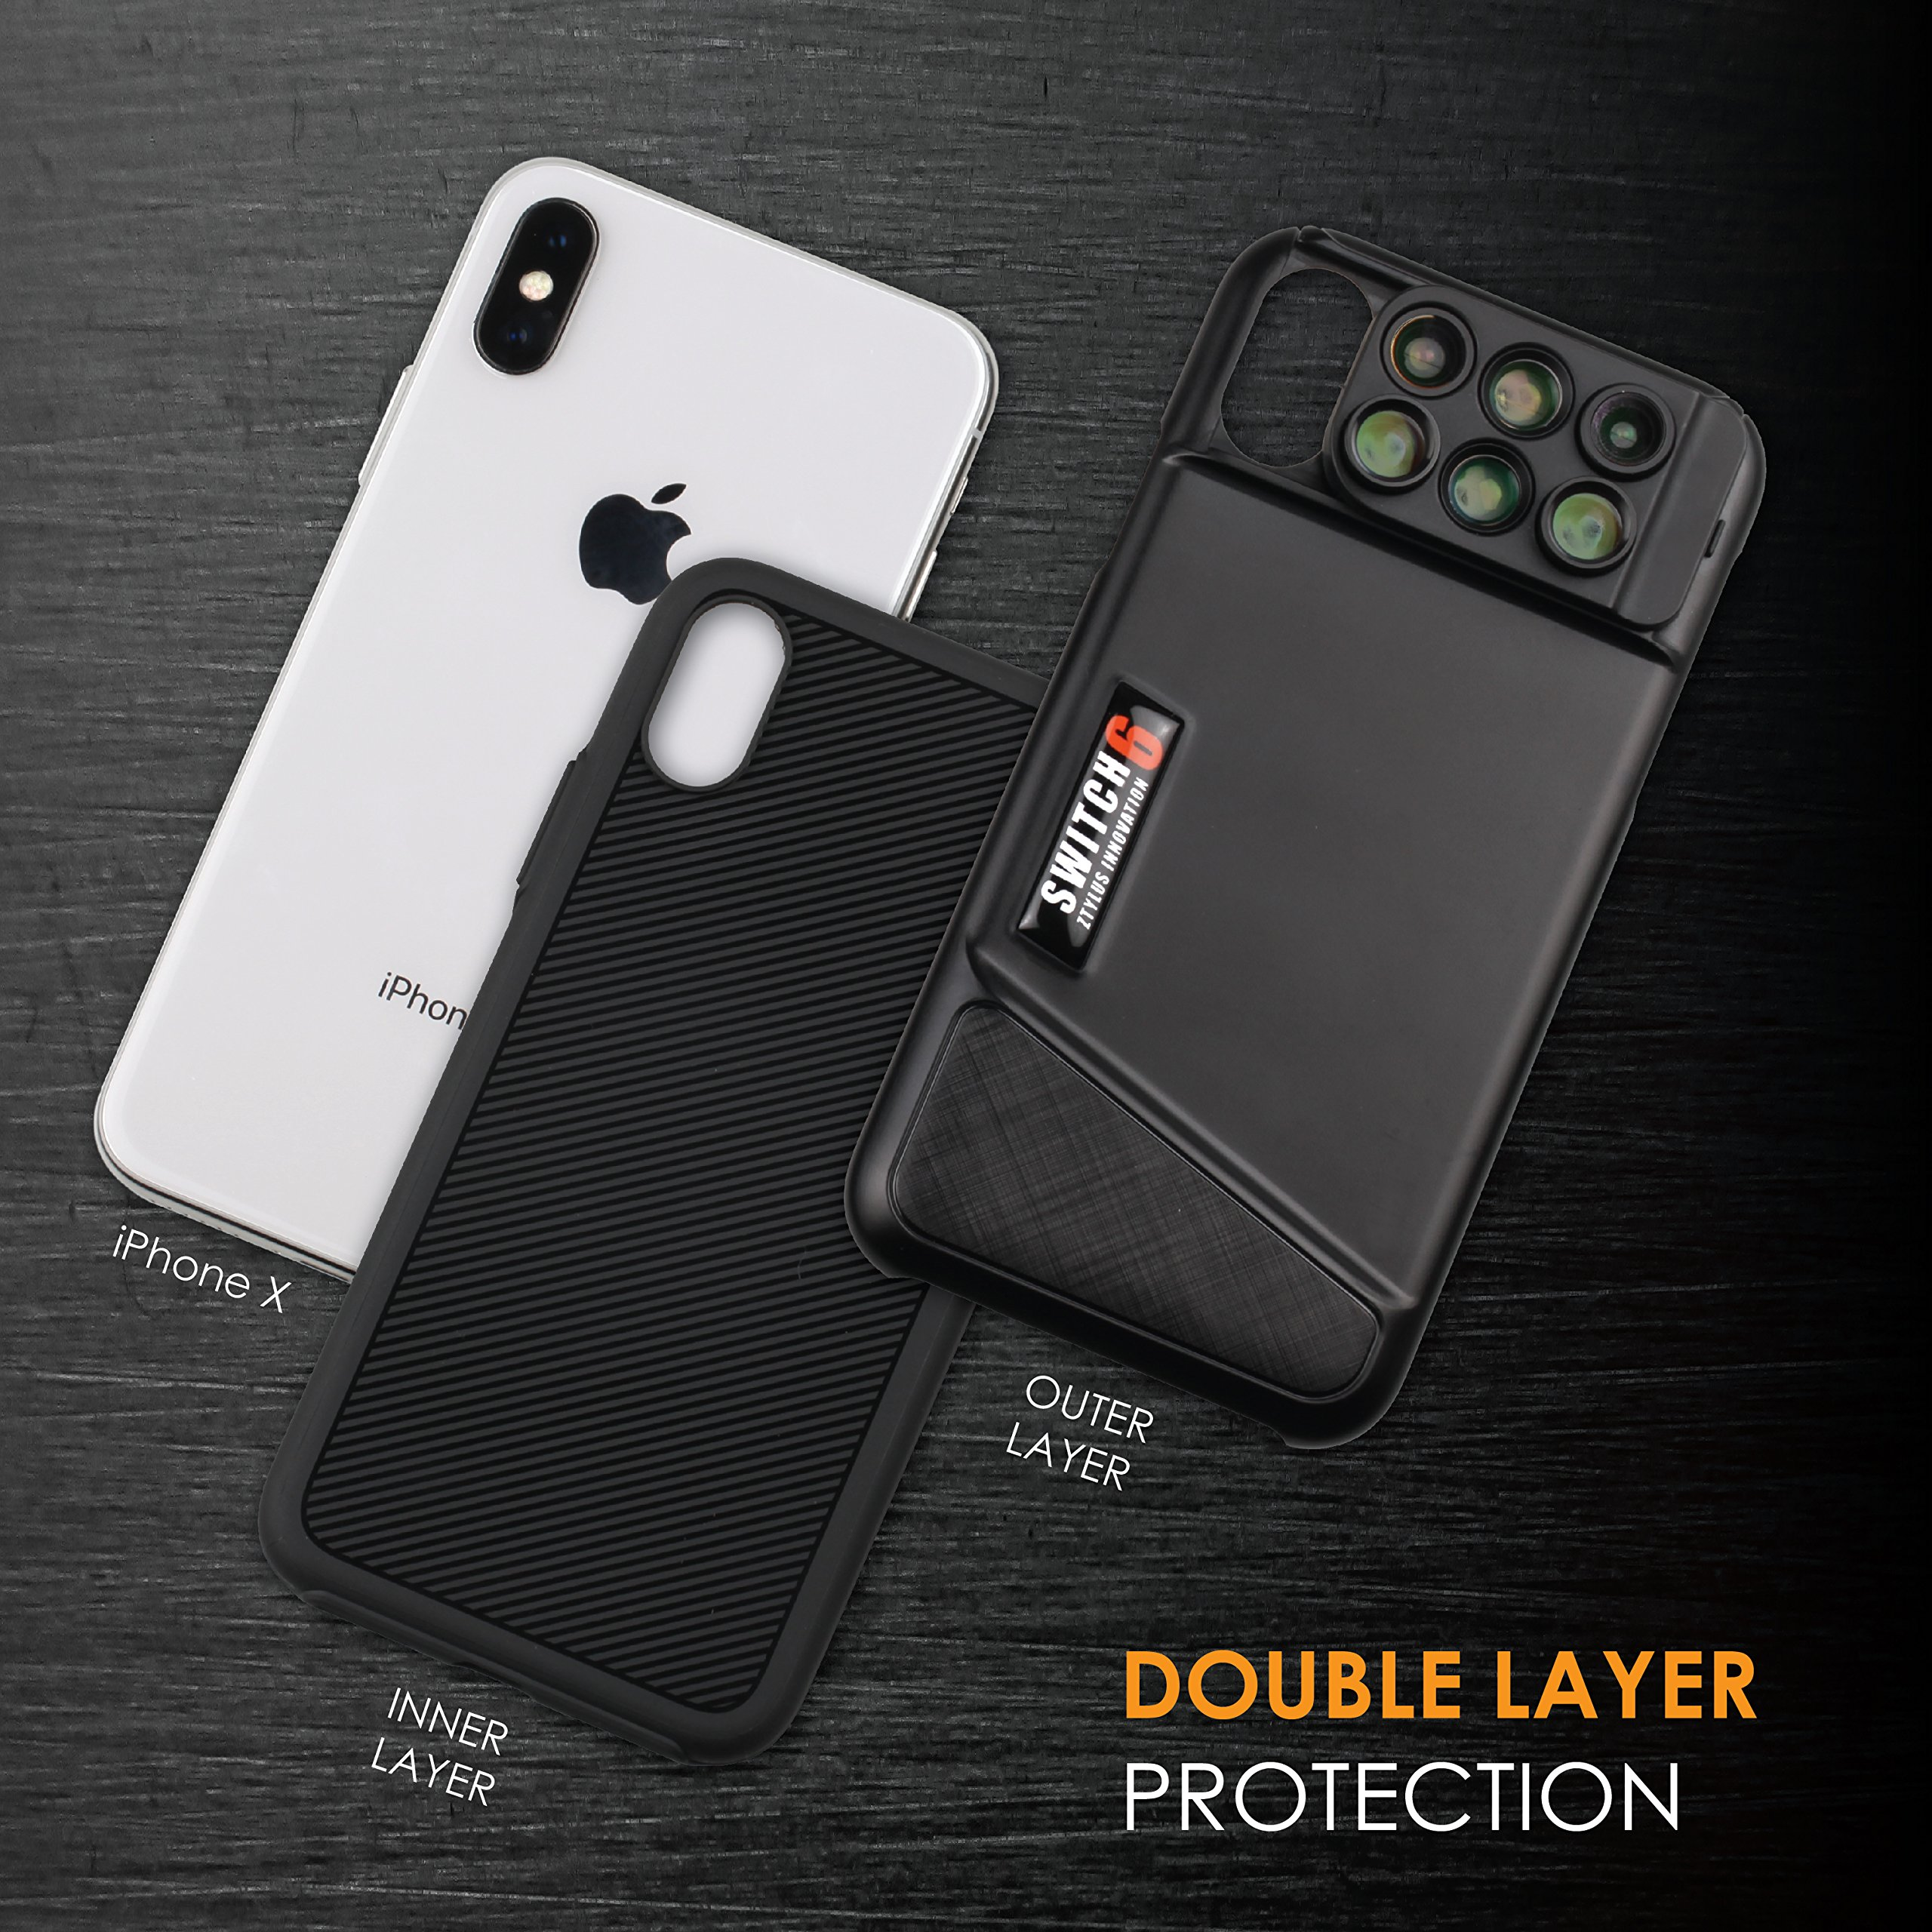 Ztylus Switch 6 for Apple iPhone X: 6 in 1 Dual Optics Lens System (Fisheye, Telephoto, Wide-angle, Macro and Super Macro), Double Layer Protection (Black) by Ztylus (Image #2)